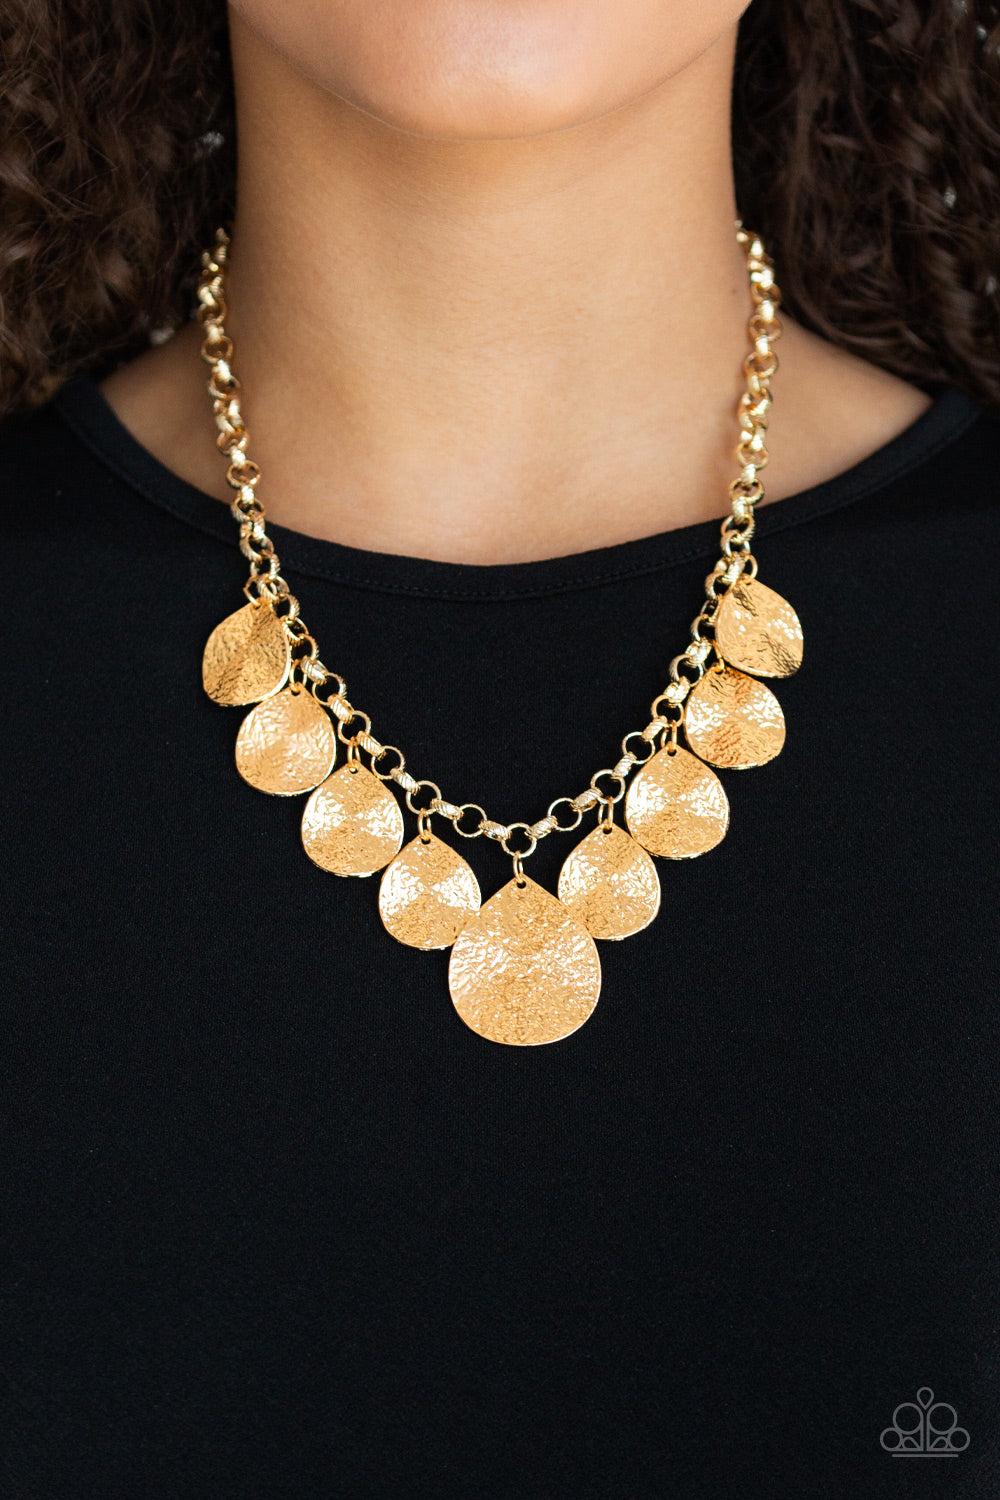 Texture Storm - Gold Paparazzi Jewelry Necklace